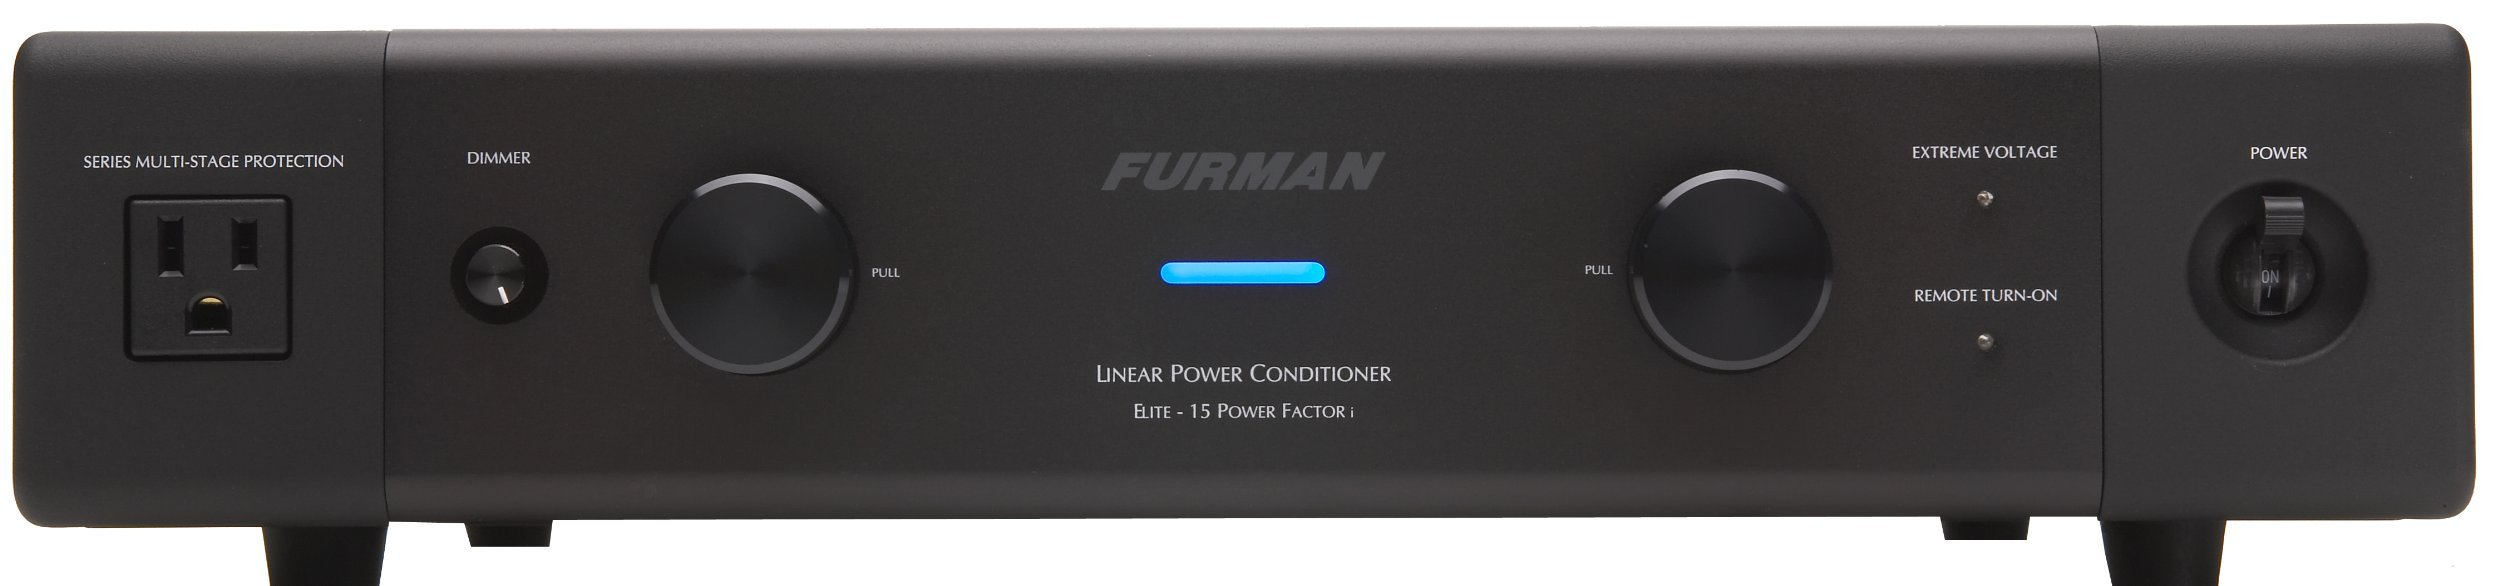 Furman Elite-15 PF i 13-Outlet Linear Filtering AC Power Source (Renewed)